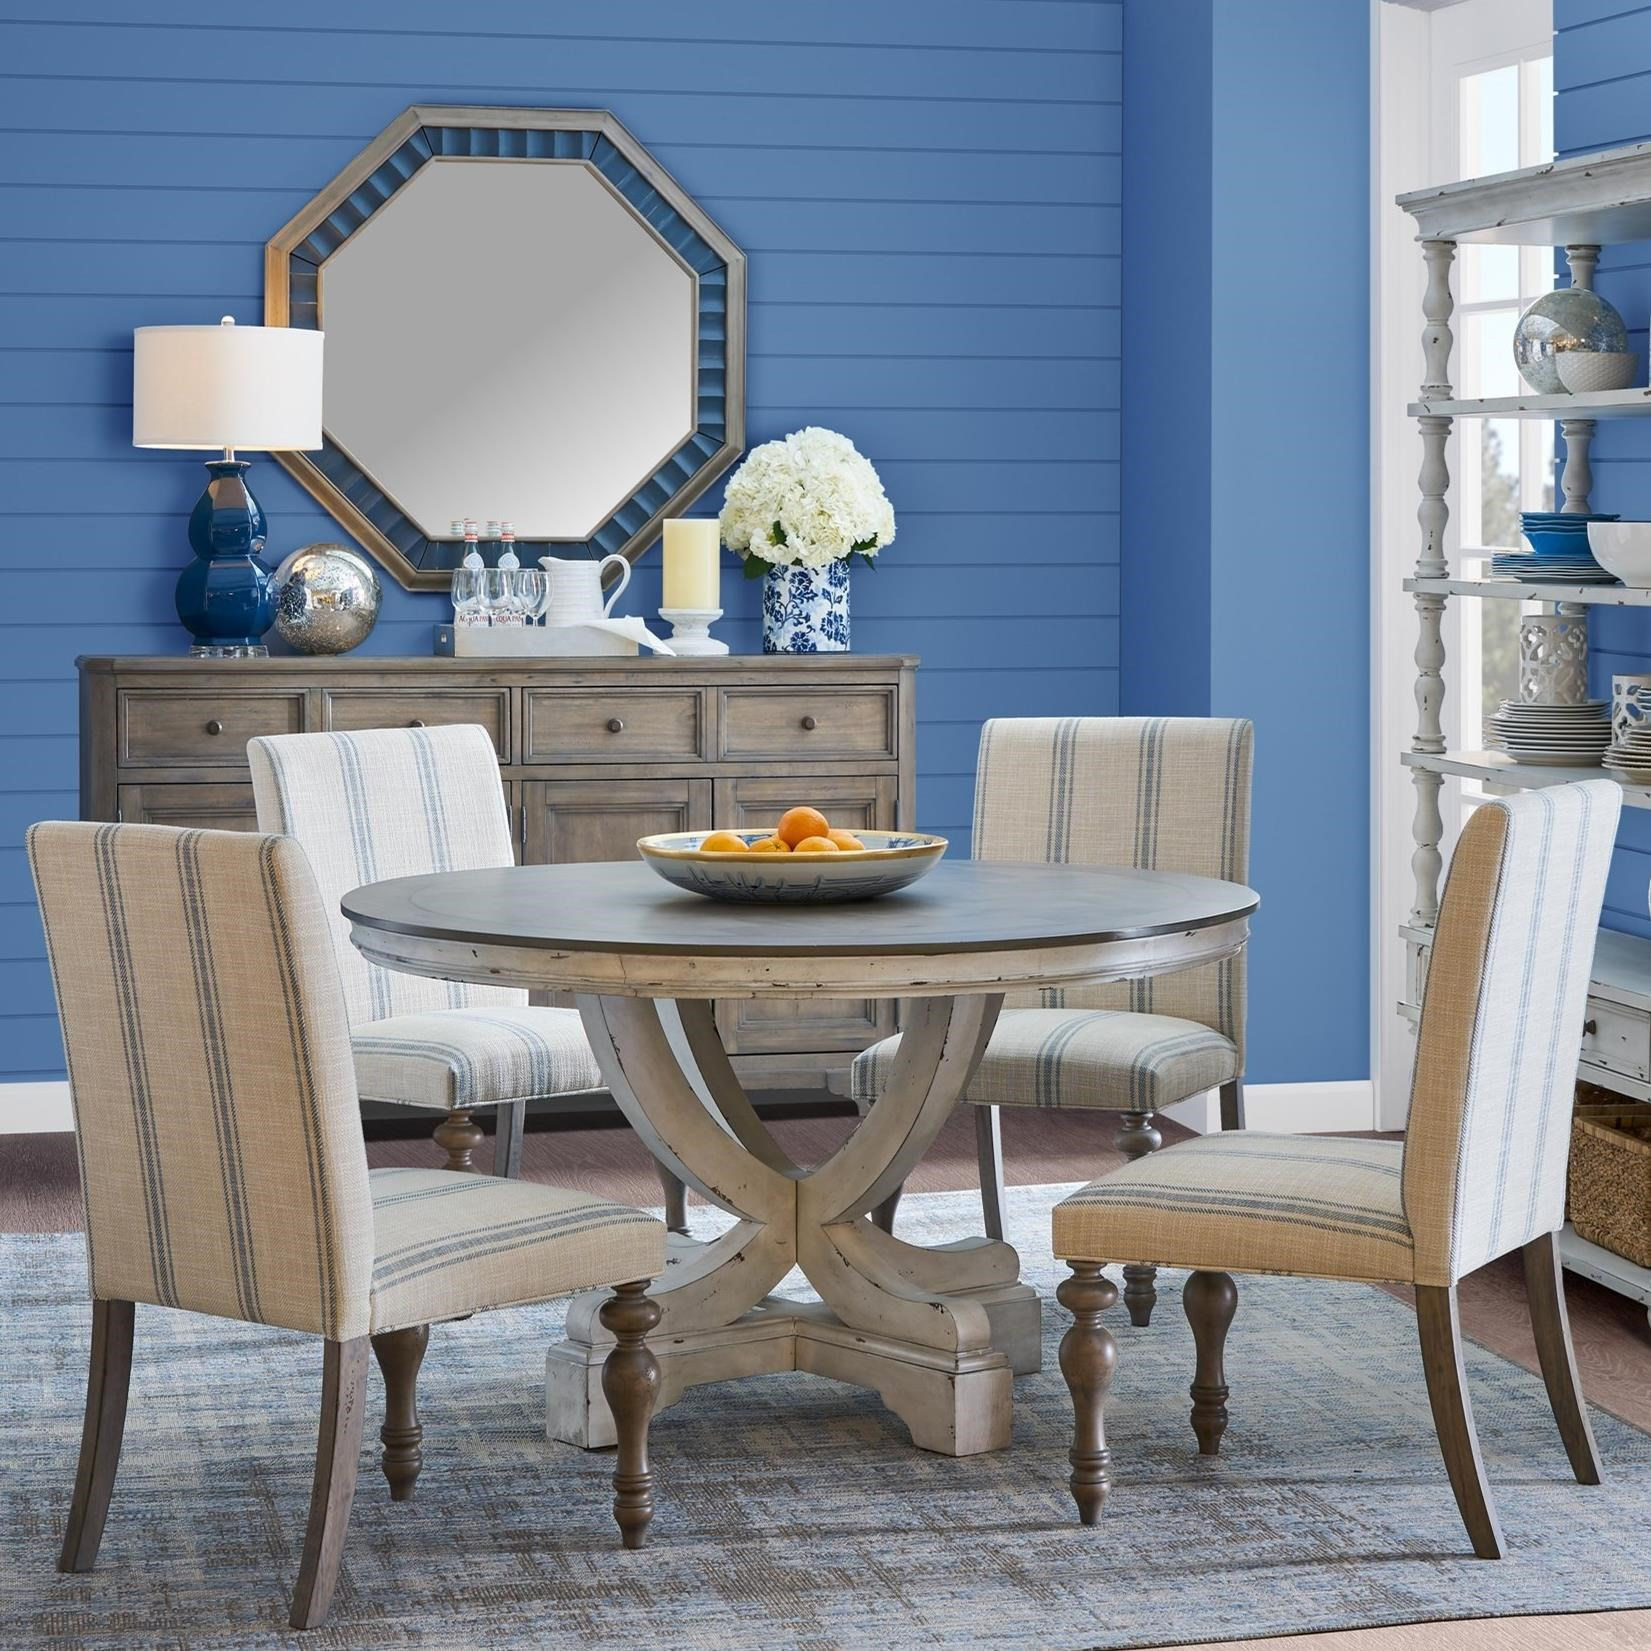 Liberty Furniture Springfield 7 Piece Pedestal Table Set: Pedestal Table And Chair Set